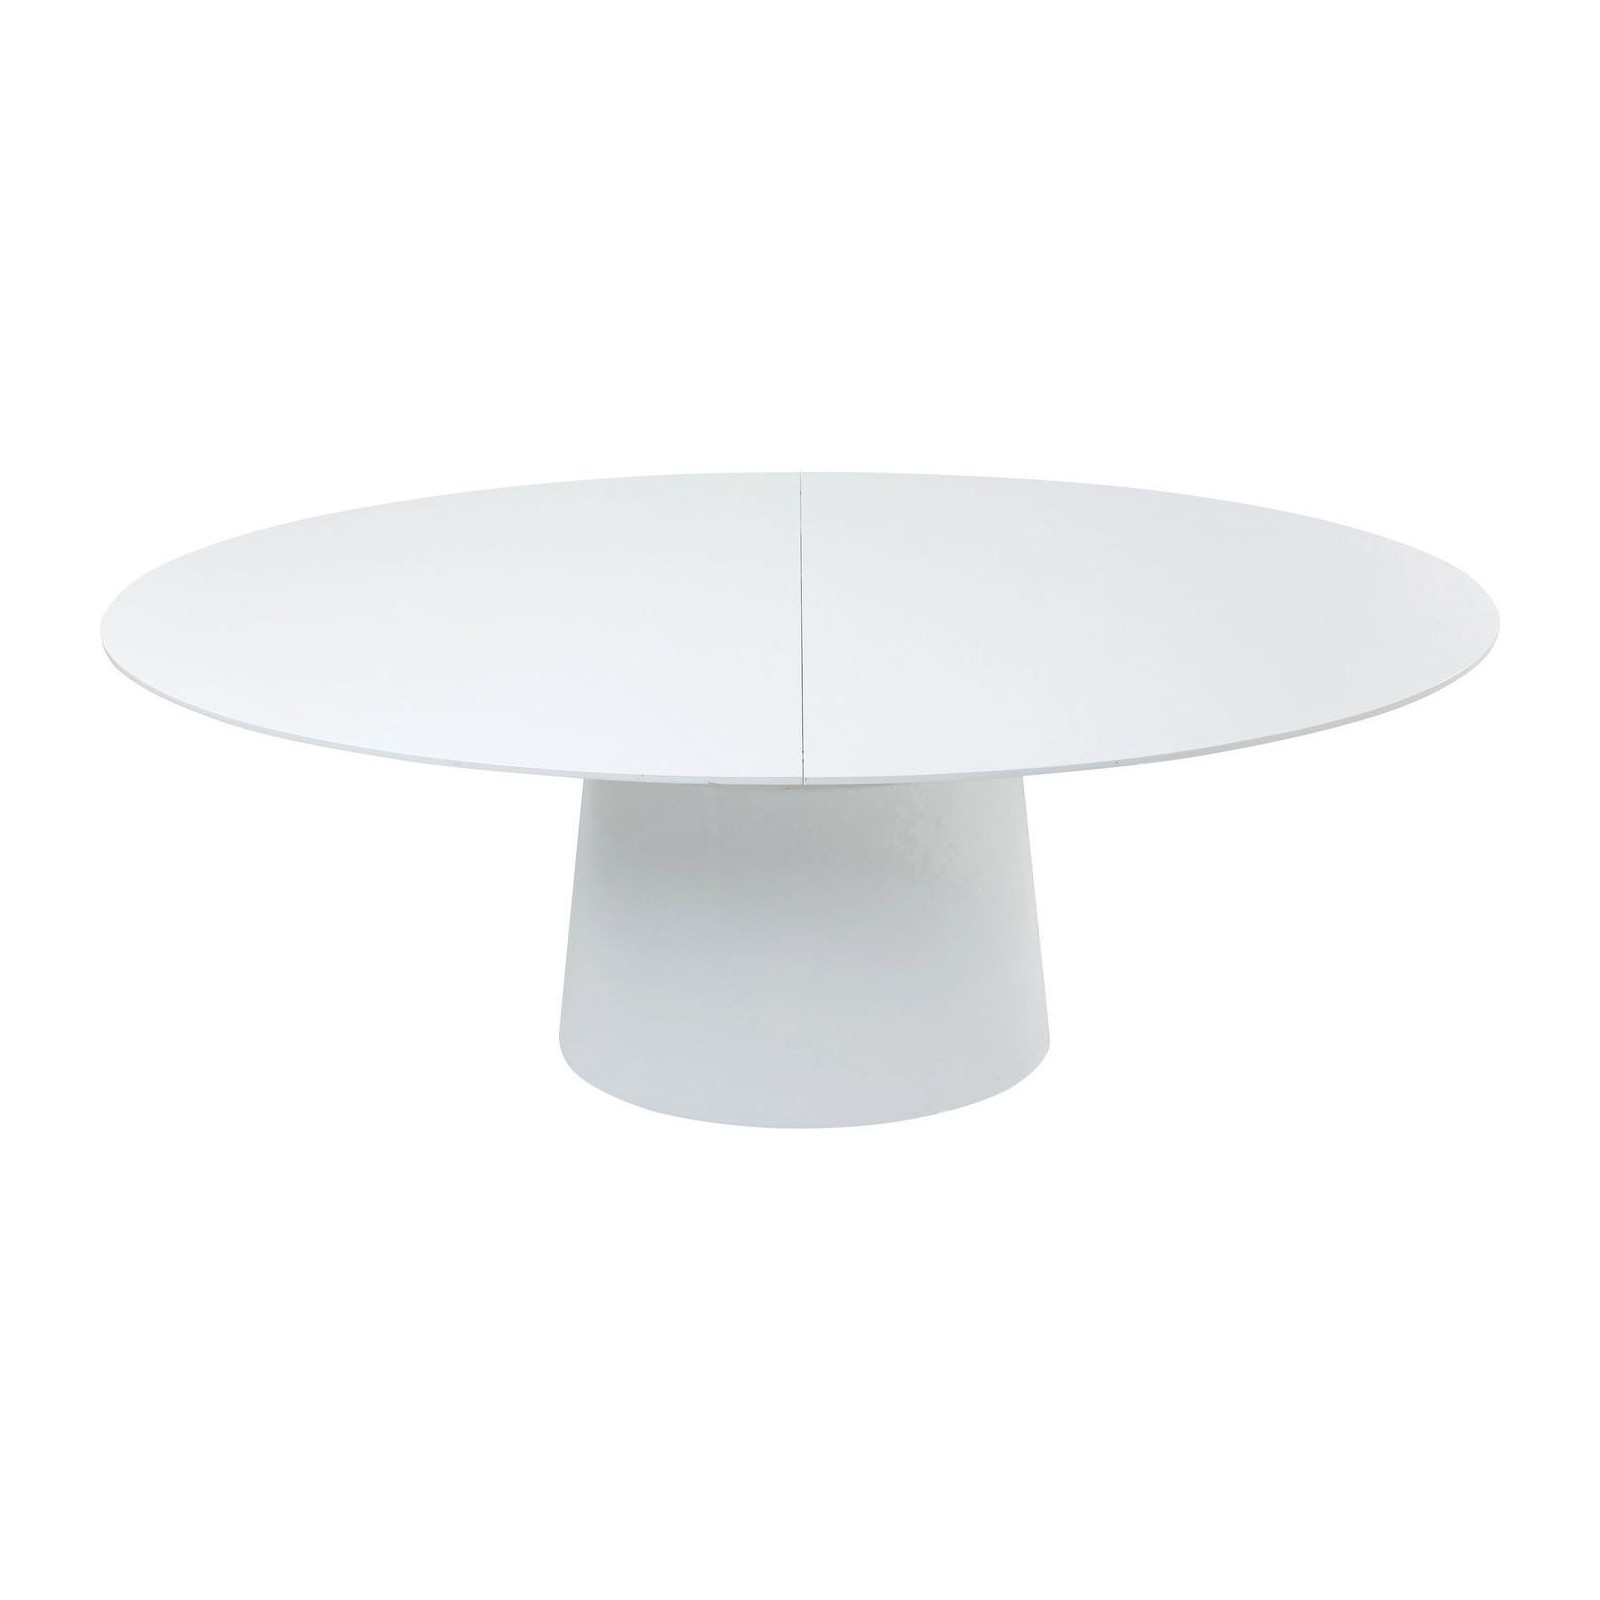 Table ronde blanche design top elegant table basse de for Table ronde a rallonge blanche